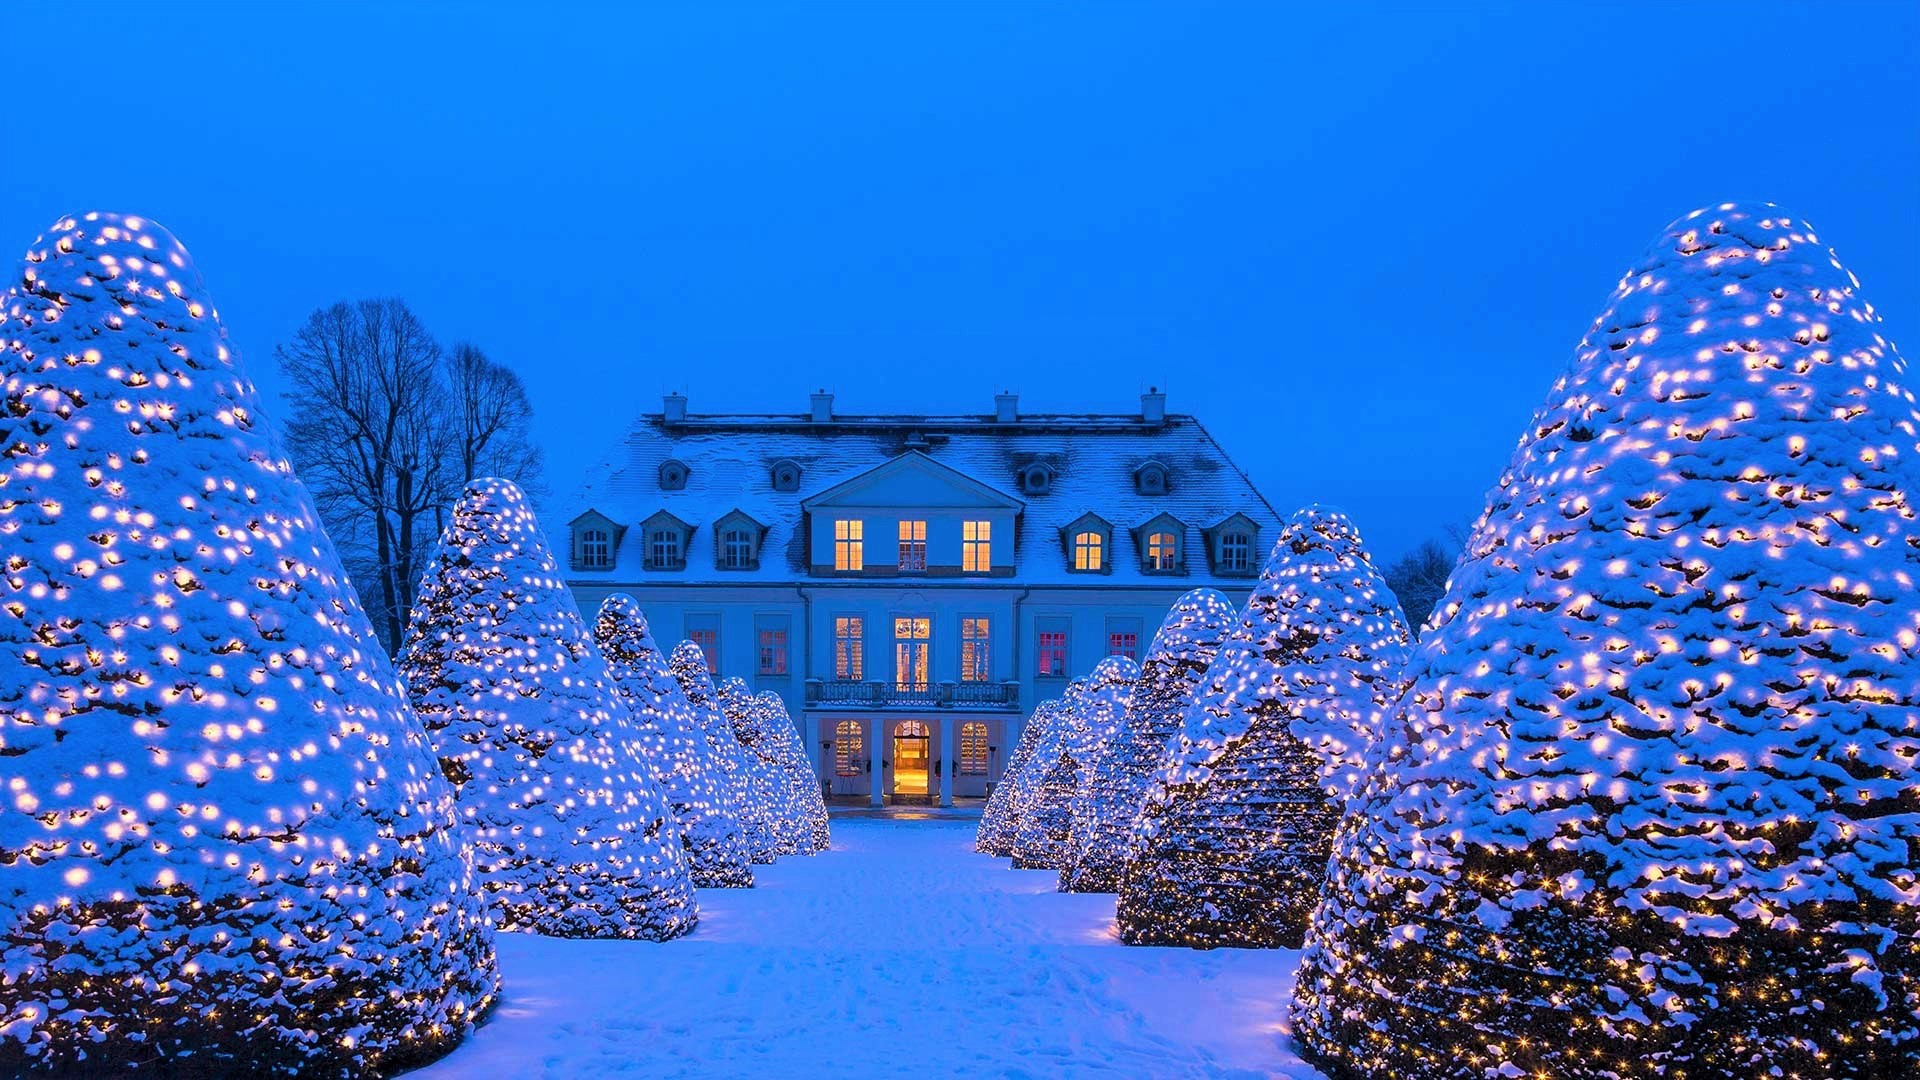 White Christmas In Germany.Palace In Germany At Christmas Hd Wallpaper Background